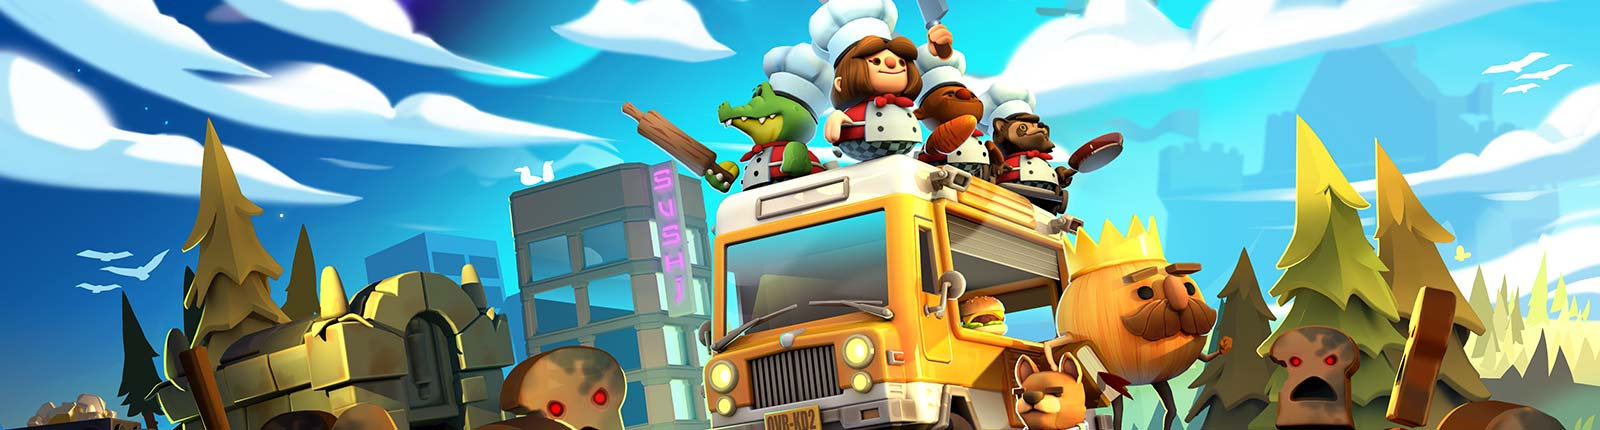 Overcooked! 2: Surf 'n' Turf Review